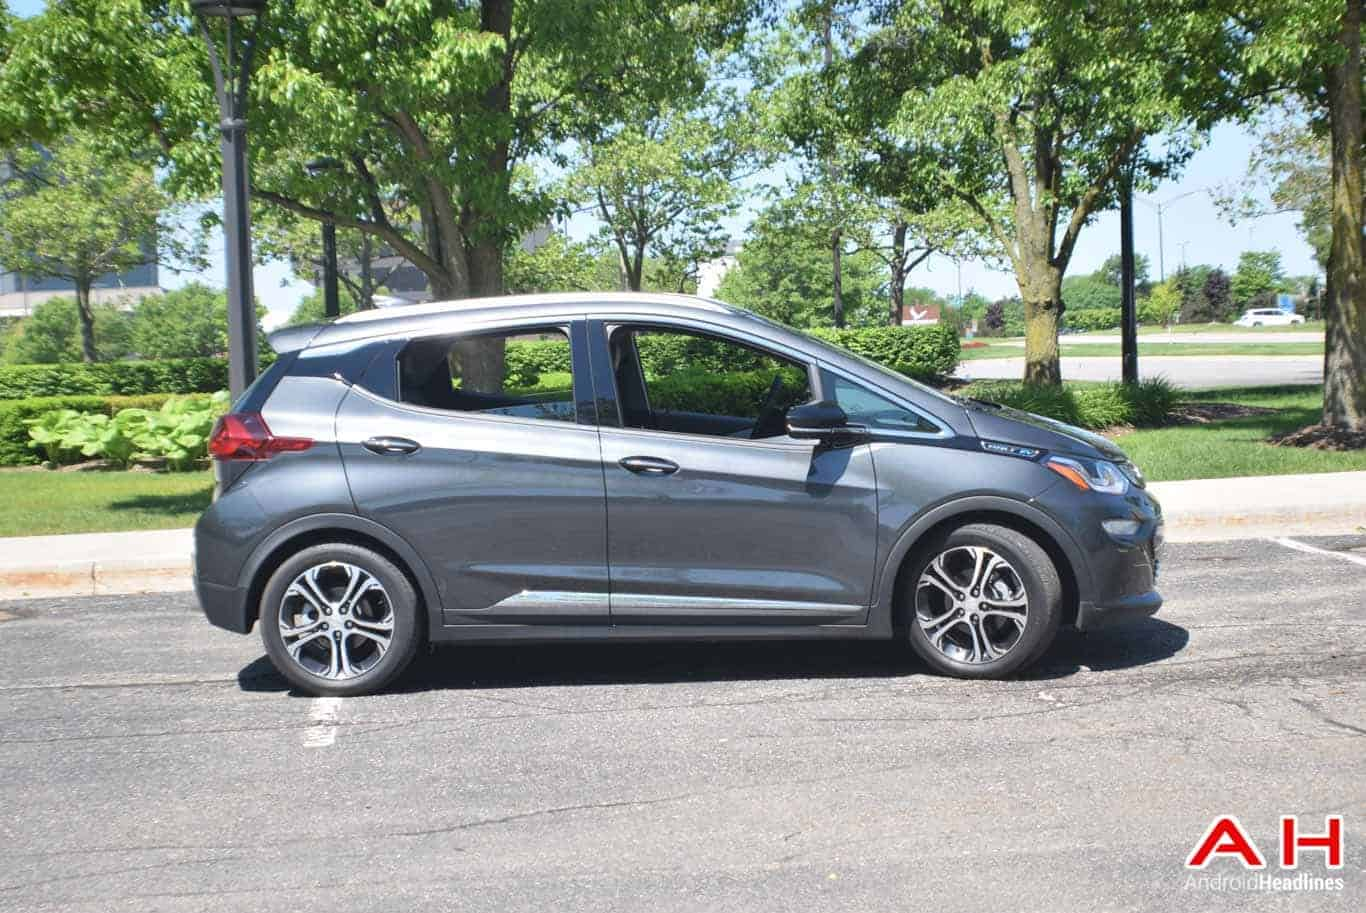 2017 chevrolet bolt ev review android auto goes electric. Black Bedroom Furniture Sets. Home Design Ideas